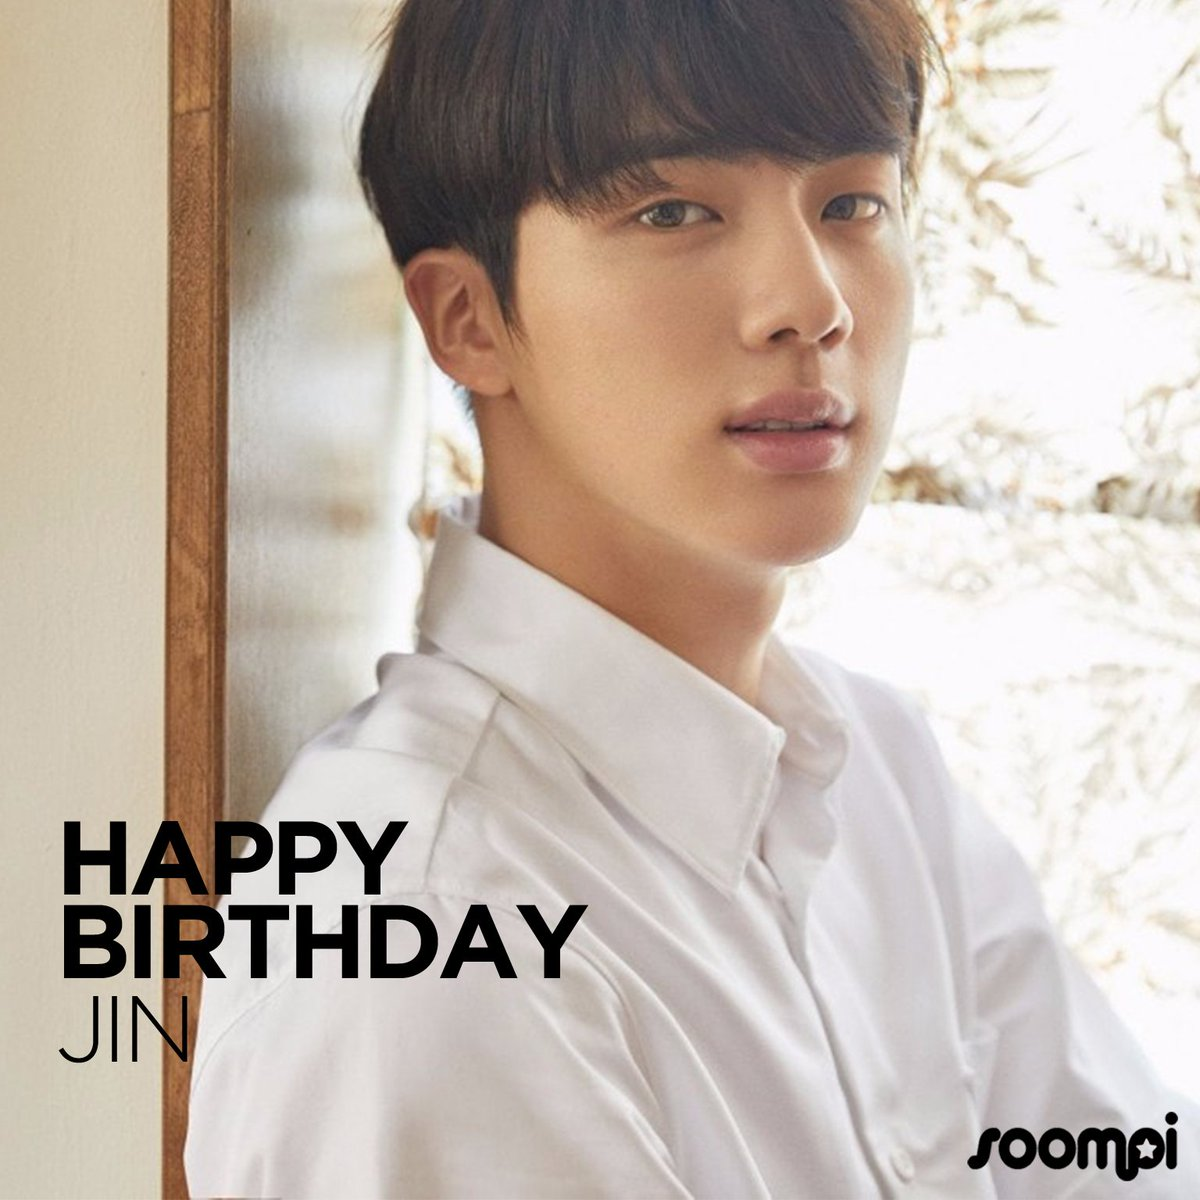 Soompi On Twitter Happy Birthday To Bts S Jin Worldwidehandsomeday Catch Up With Him Https T Co Pixjupurb2